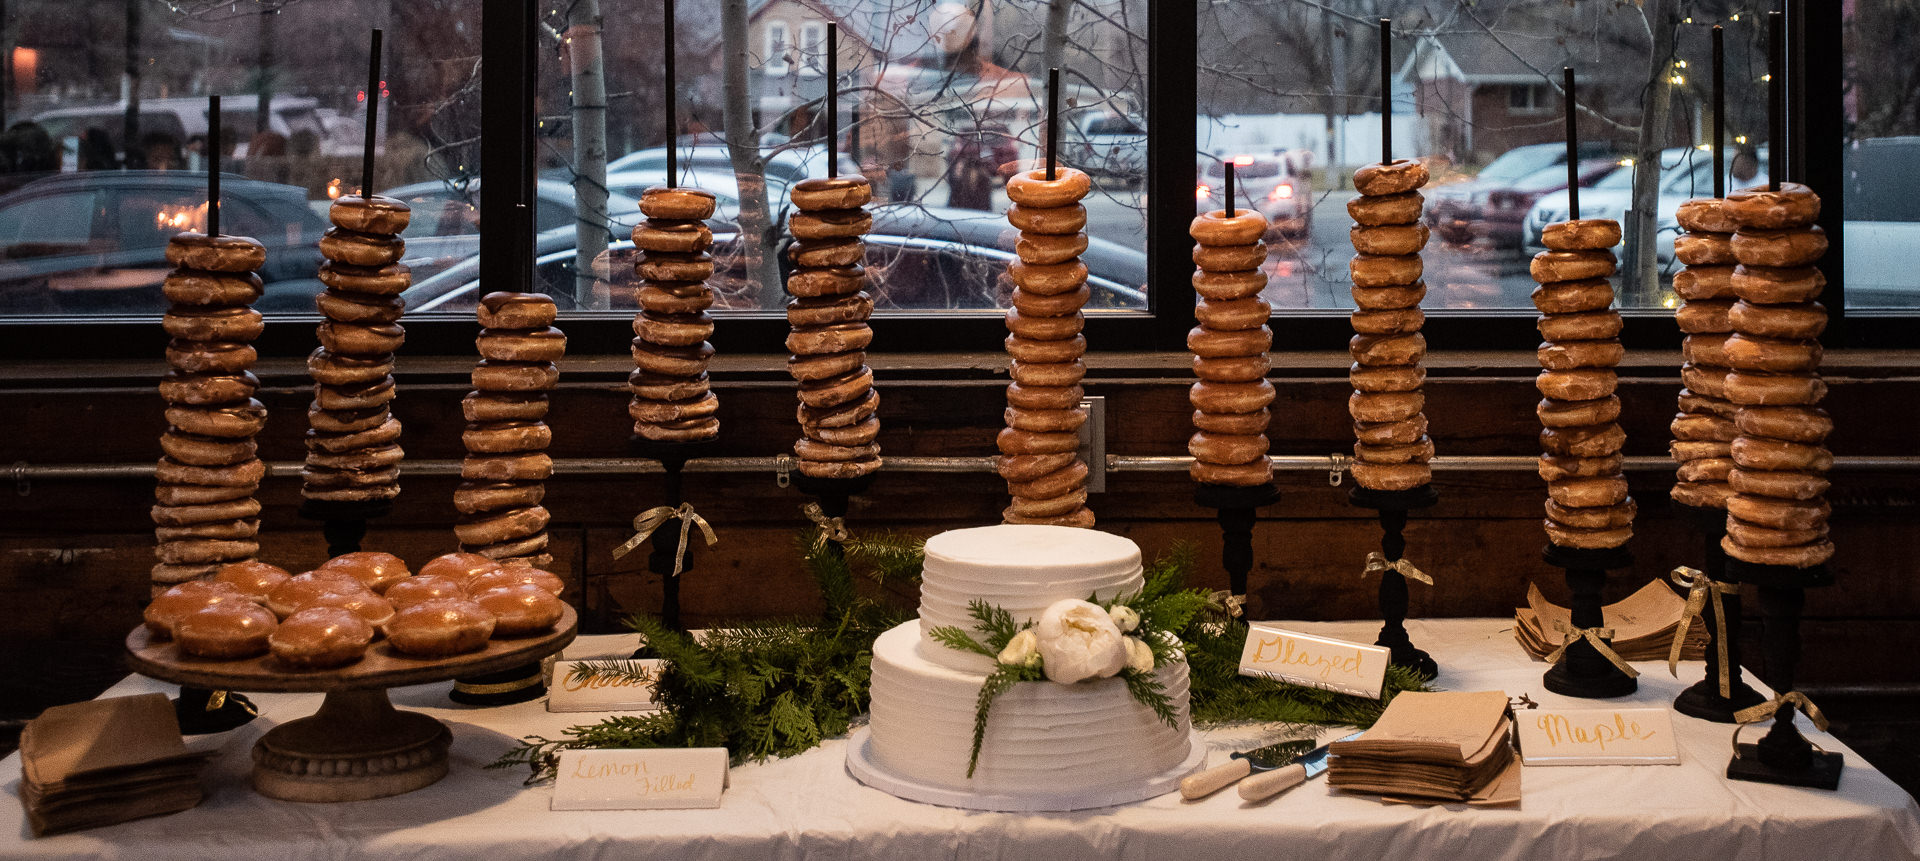 Wedding Donuts Cake